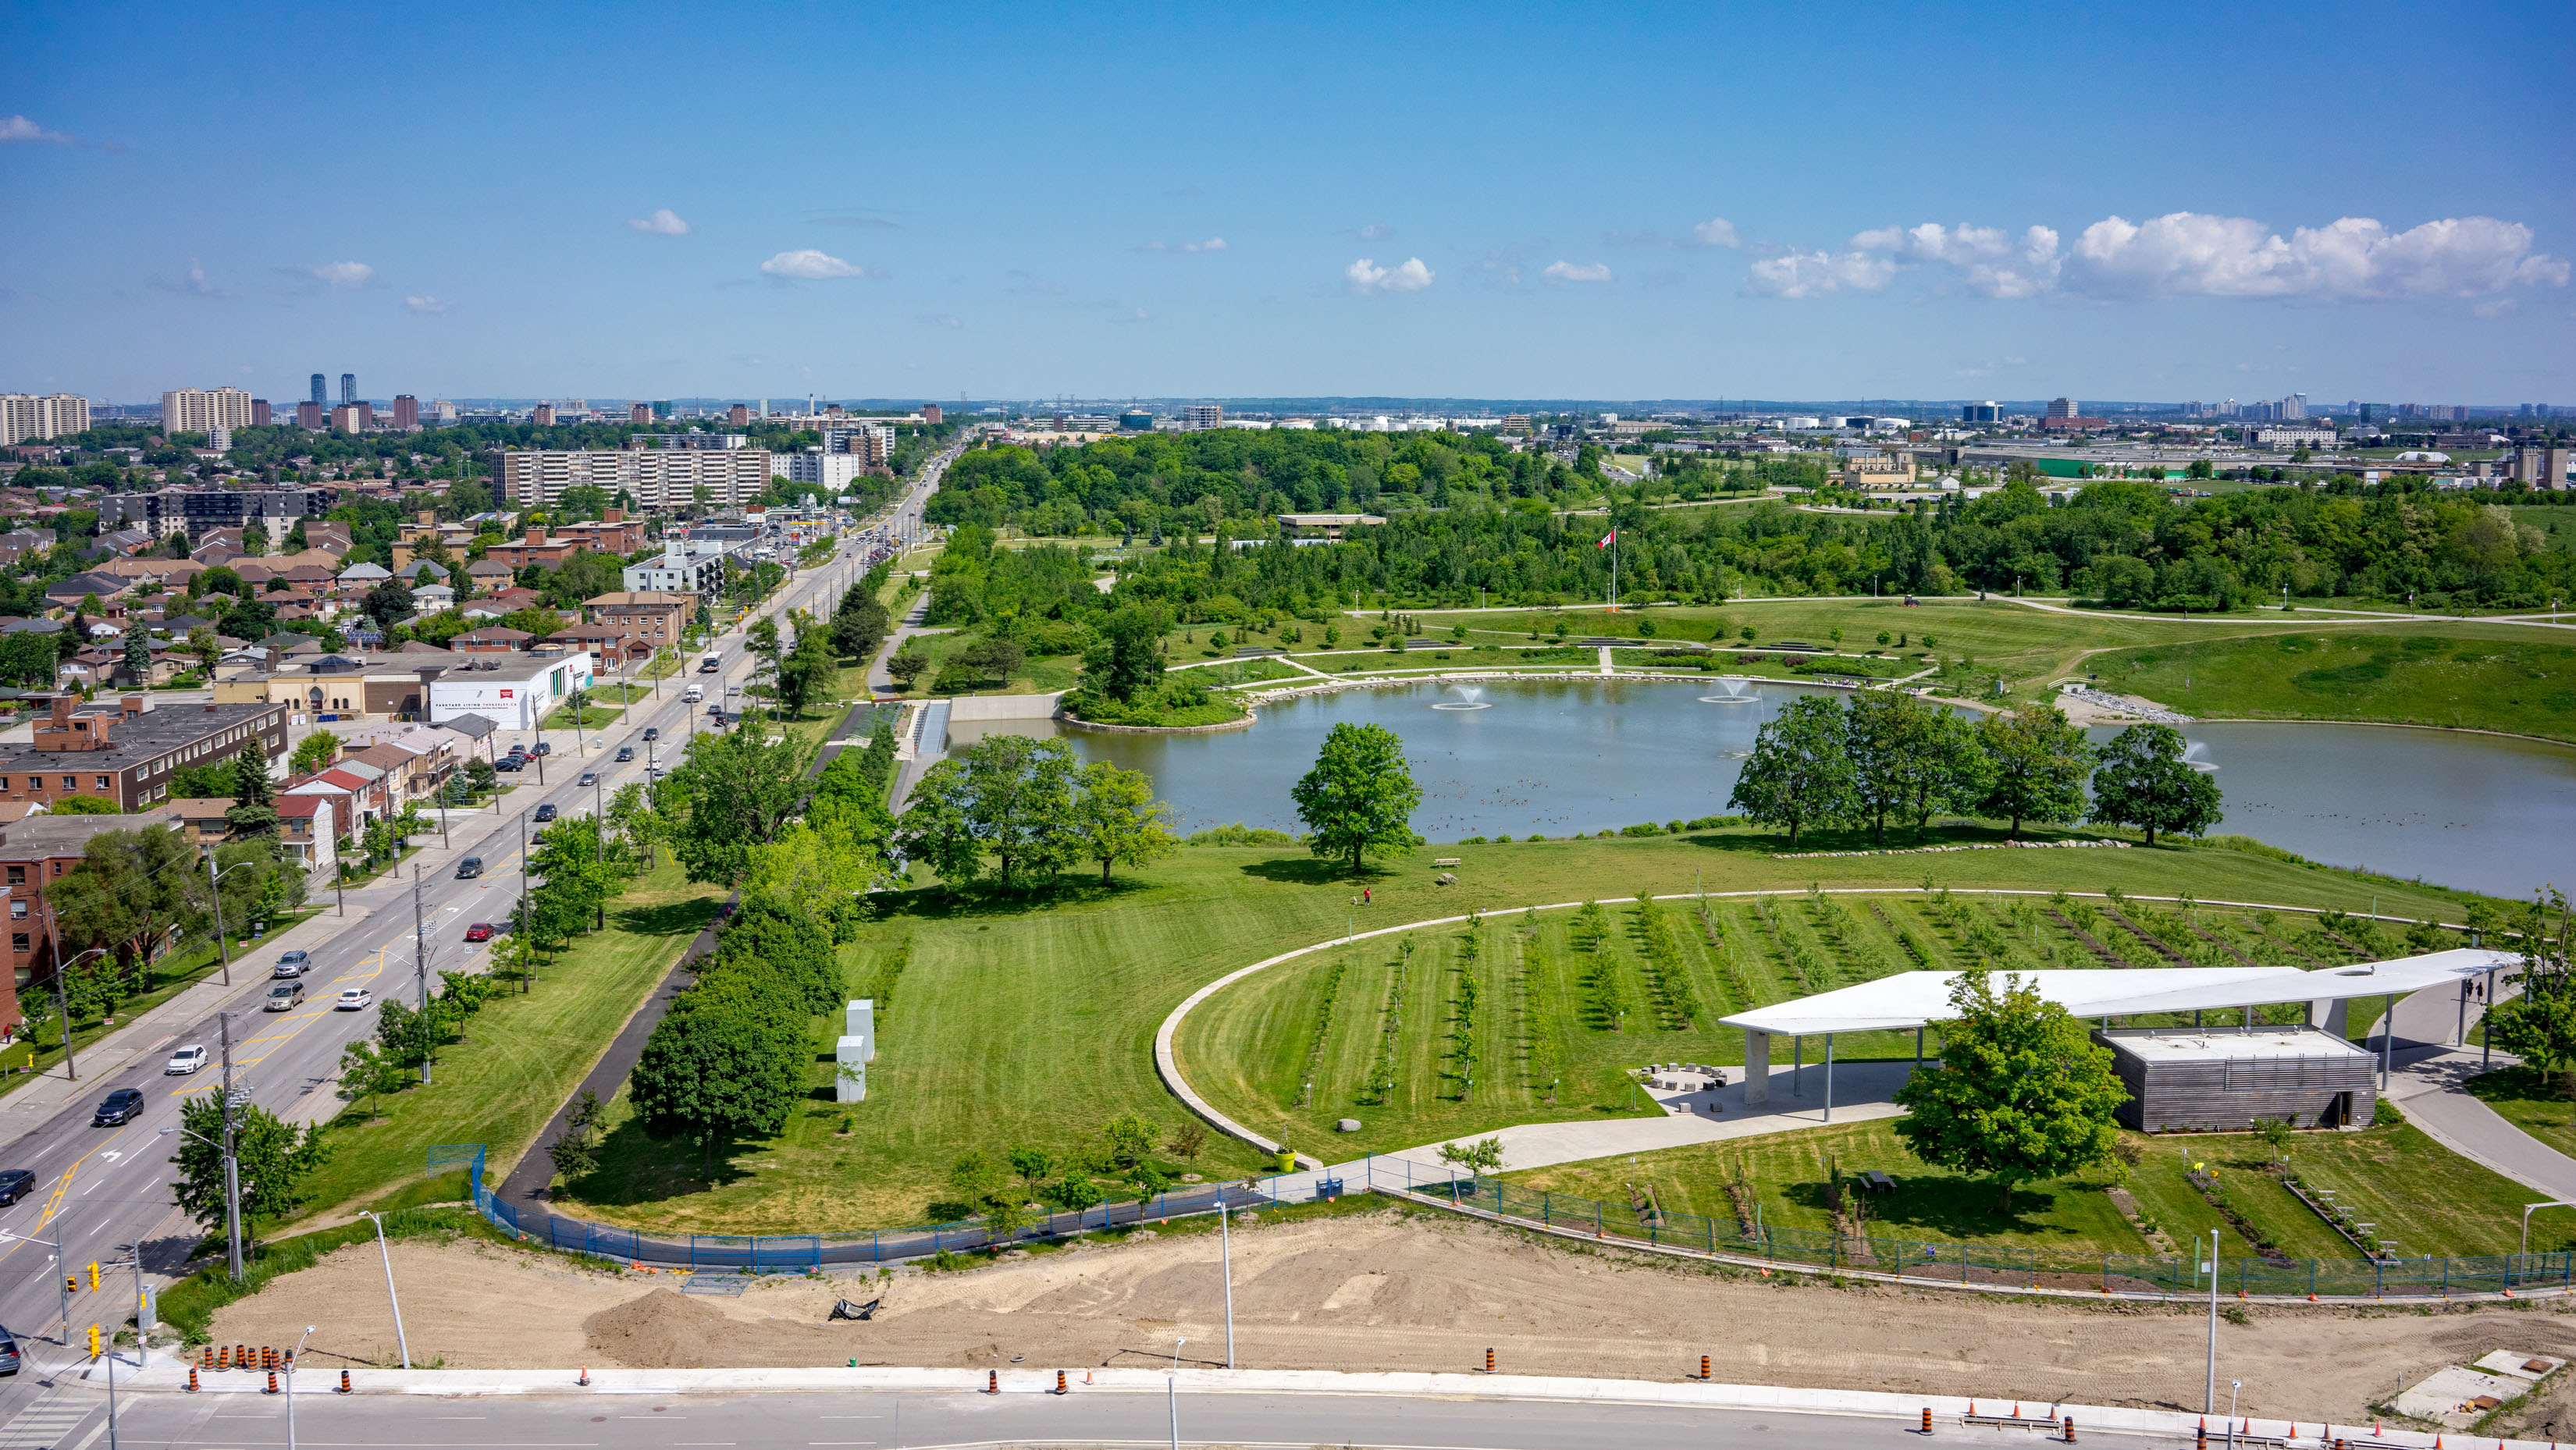 SaturdayinDownsviewPark